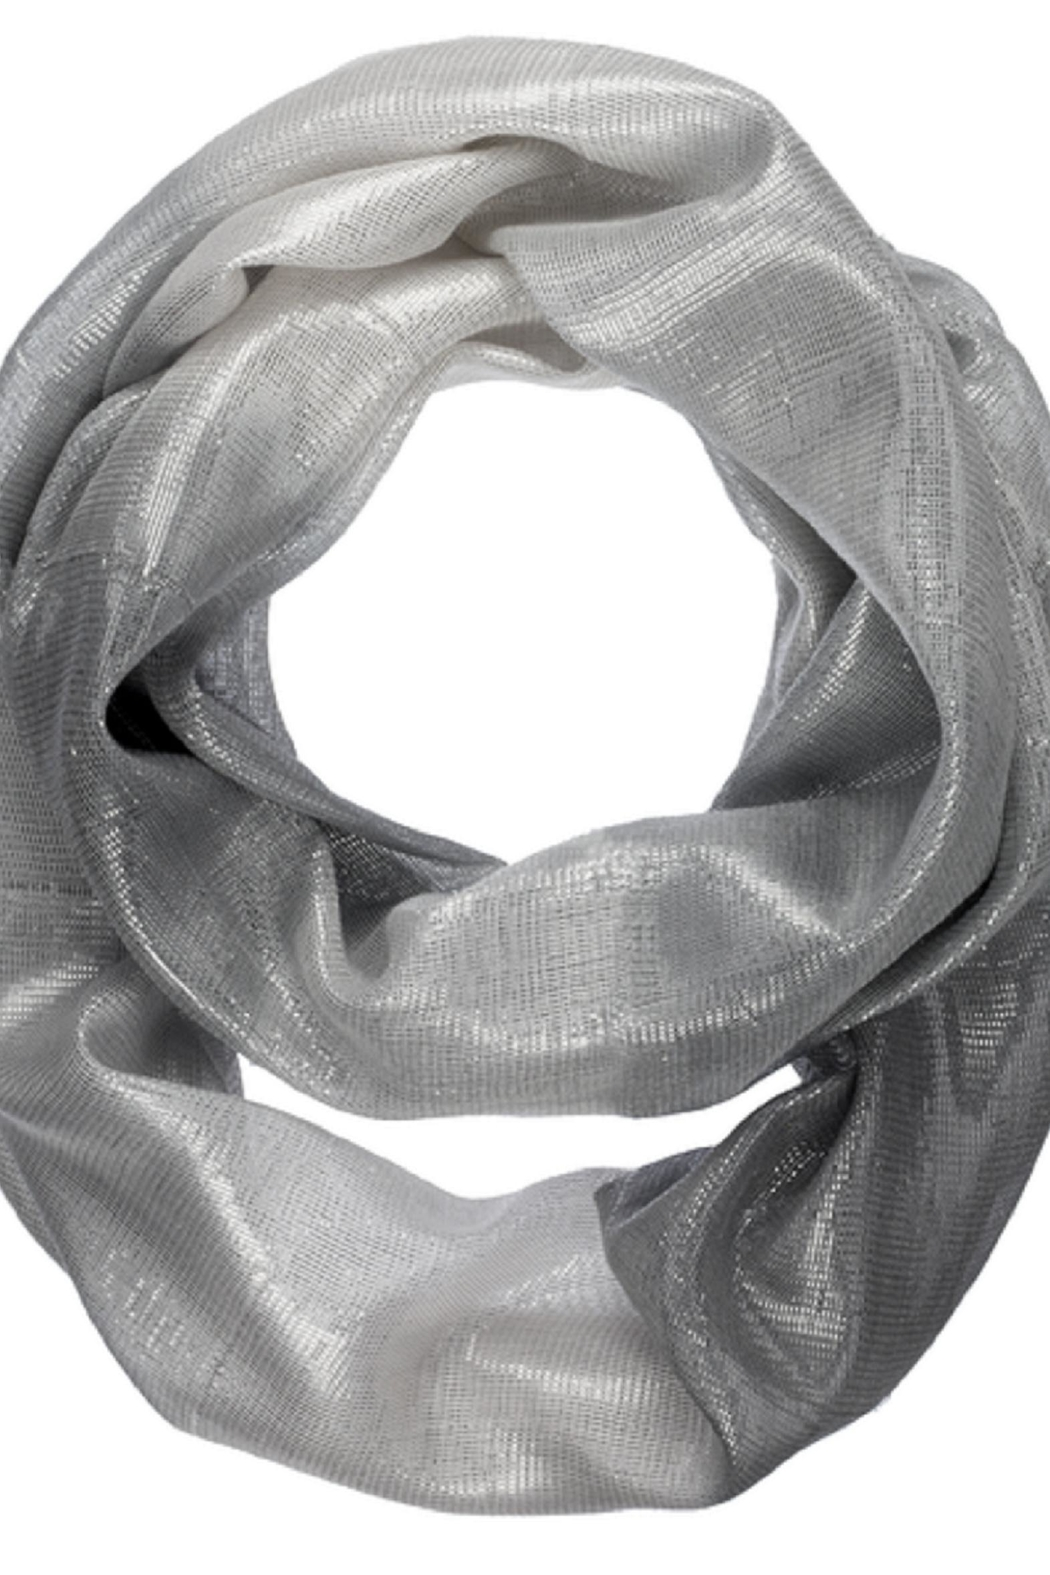 Bling It Around Again Shimmer Infinity Scarf - Front Cropped Image